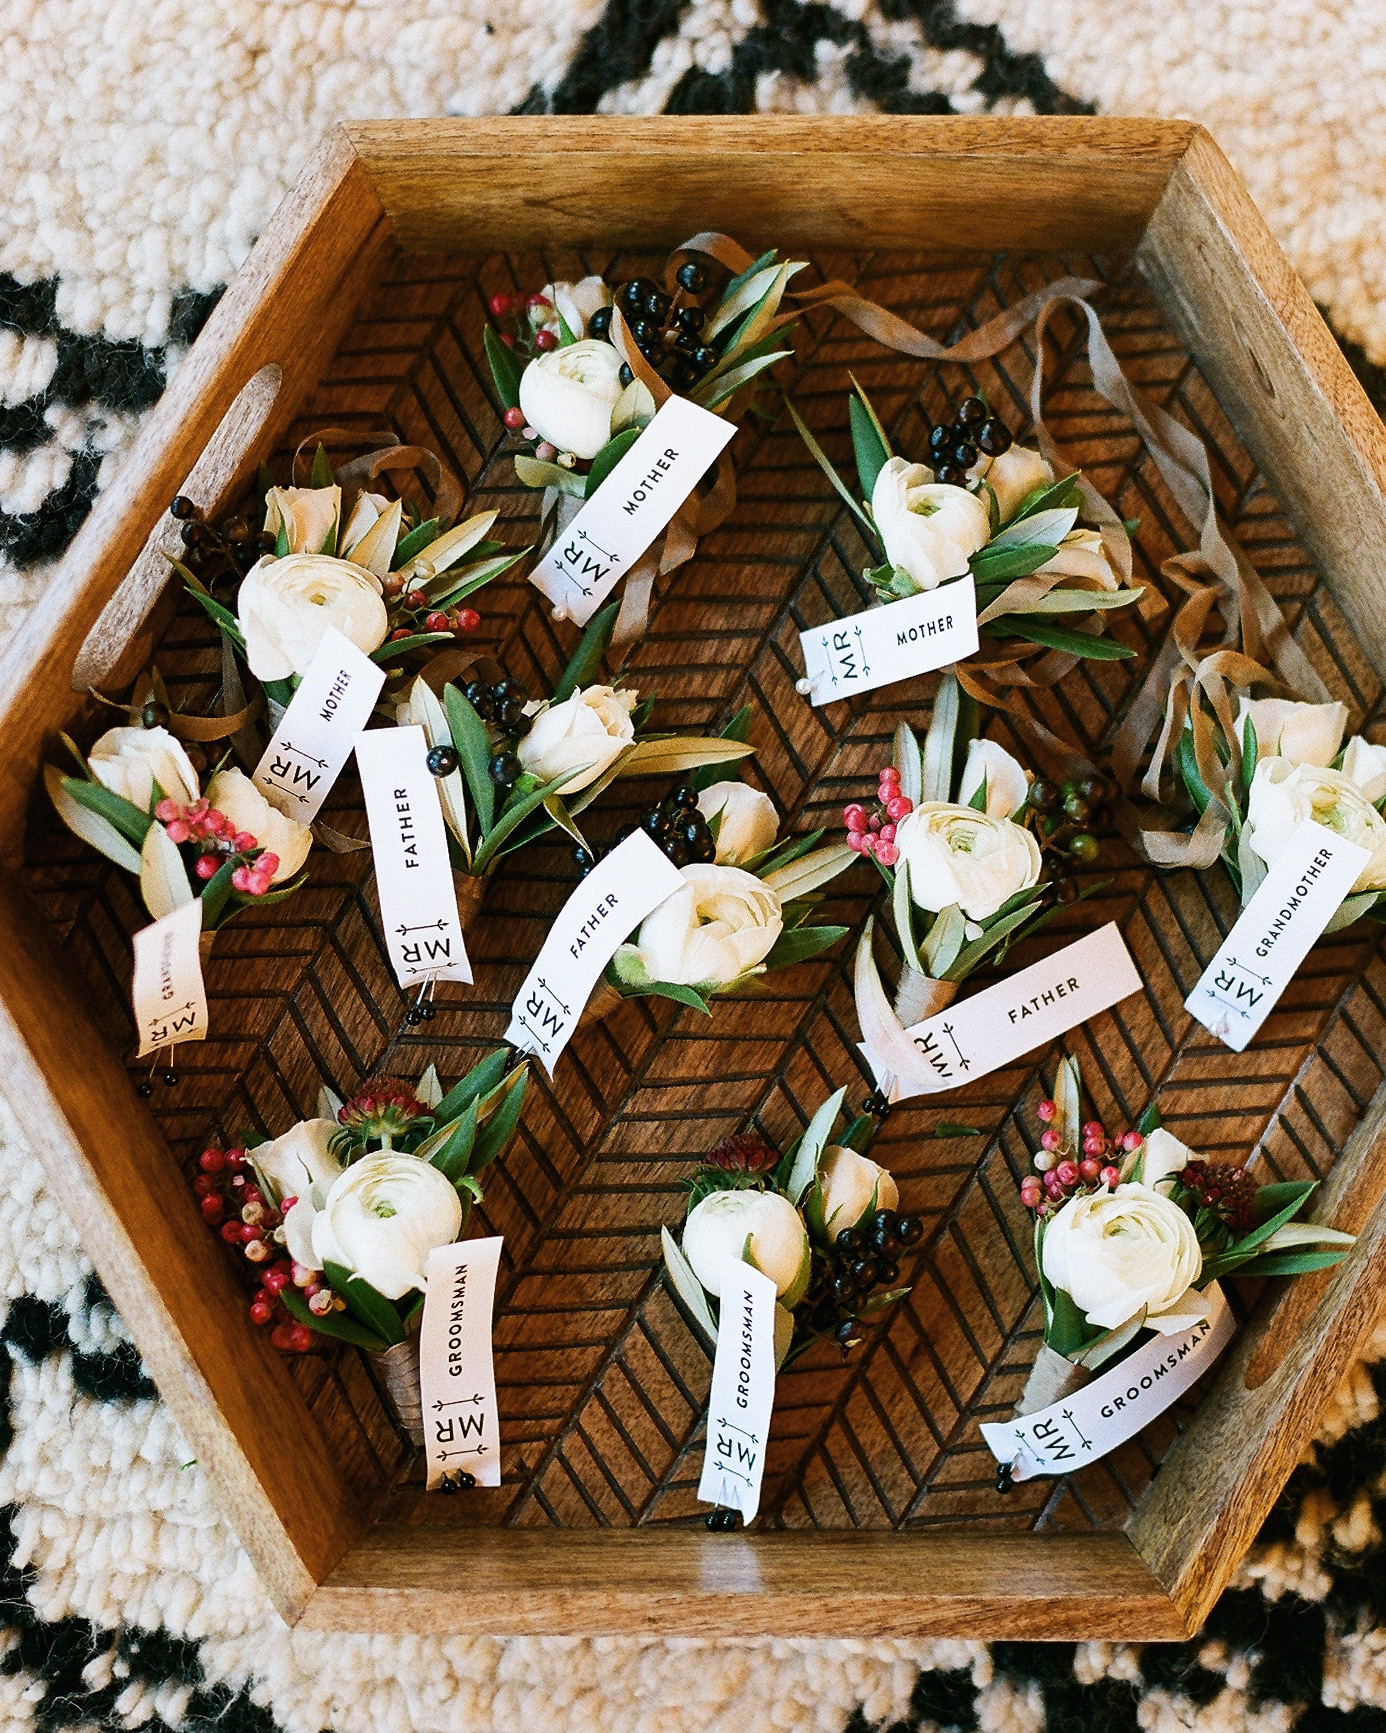 maddy-mike-wedding-boutonnieres-103.9767.10.2015.49-6134174-0716.jpg